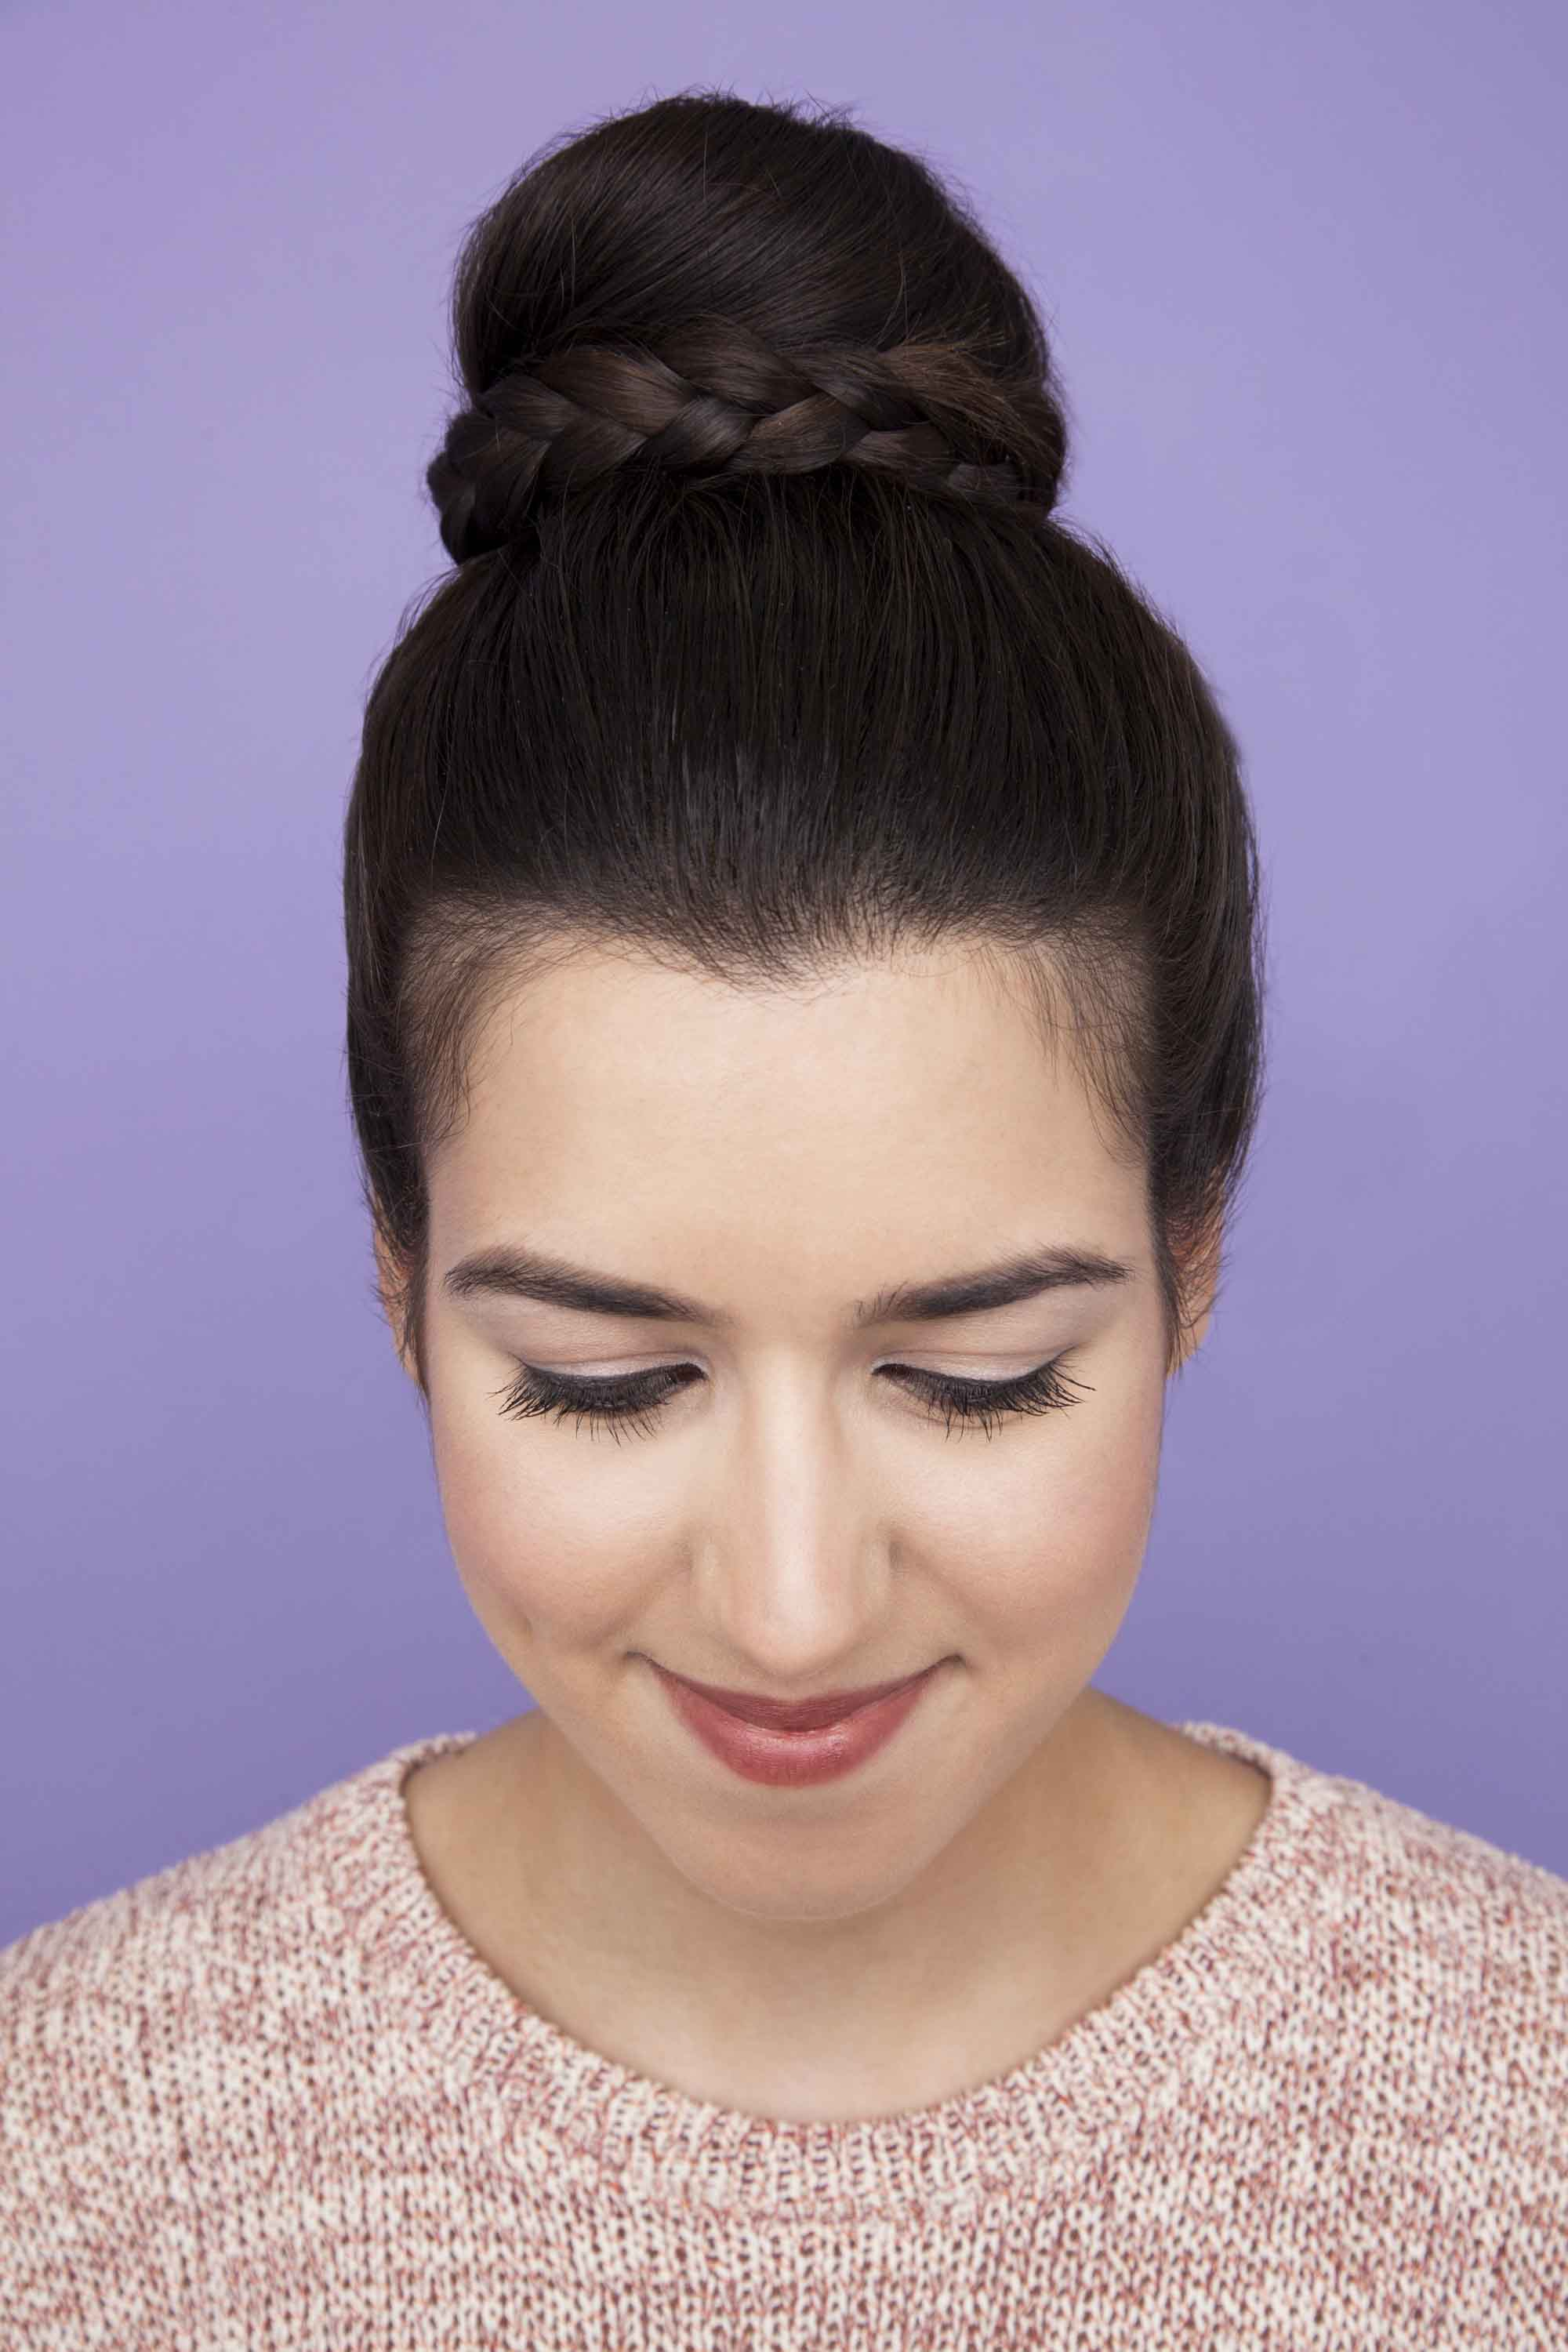 Easy updos - Braided ballerina bun on dark-haired model against a purple backdrop